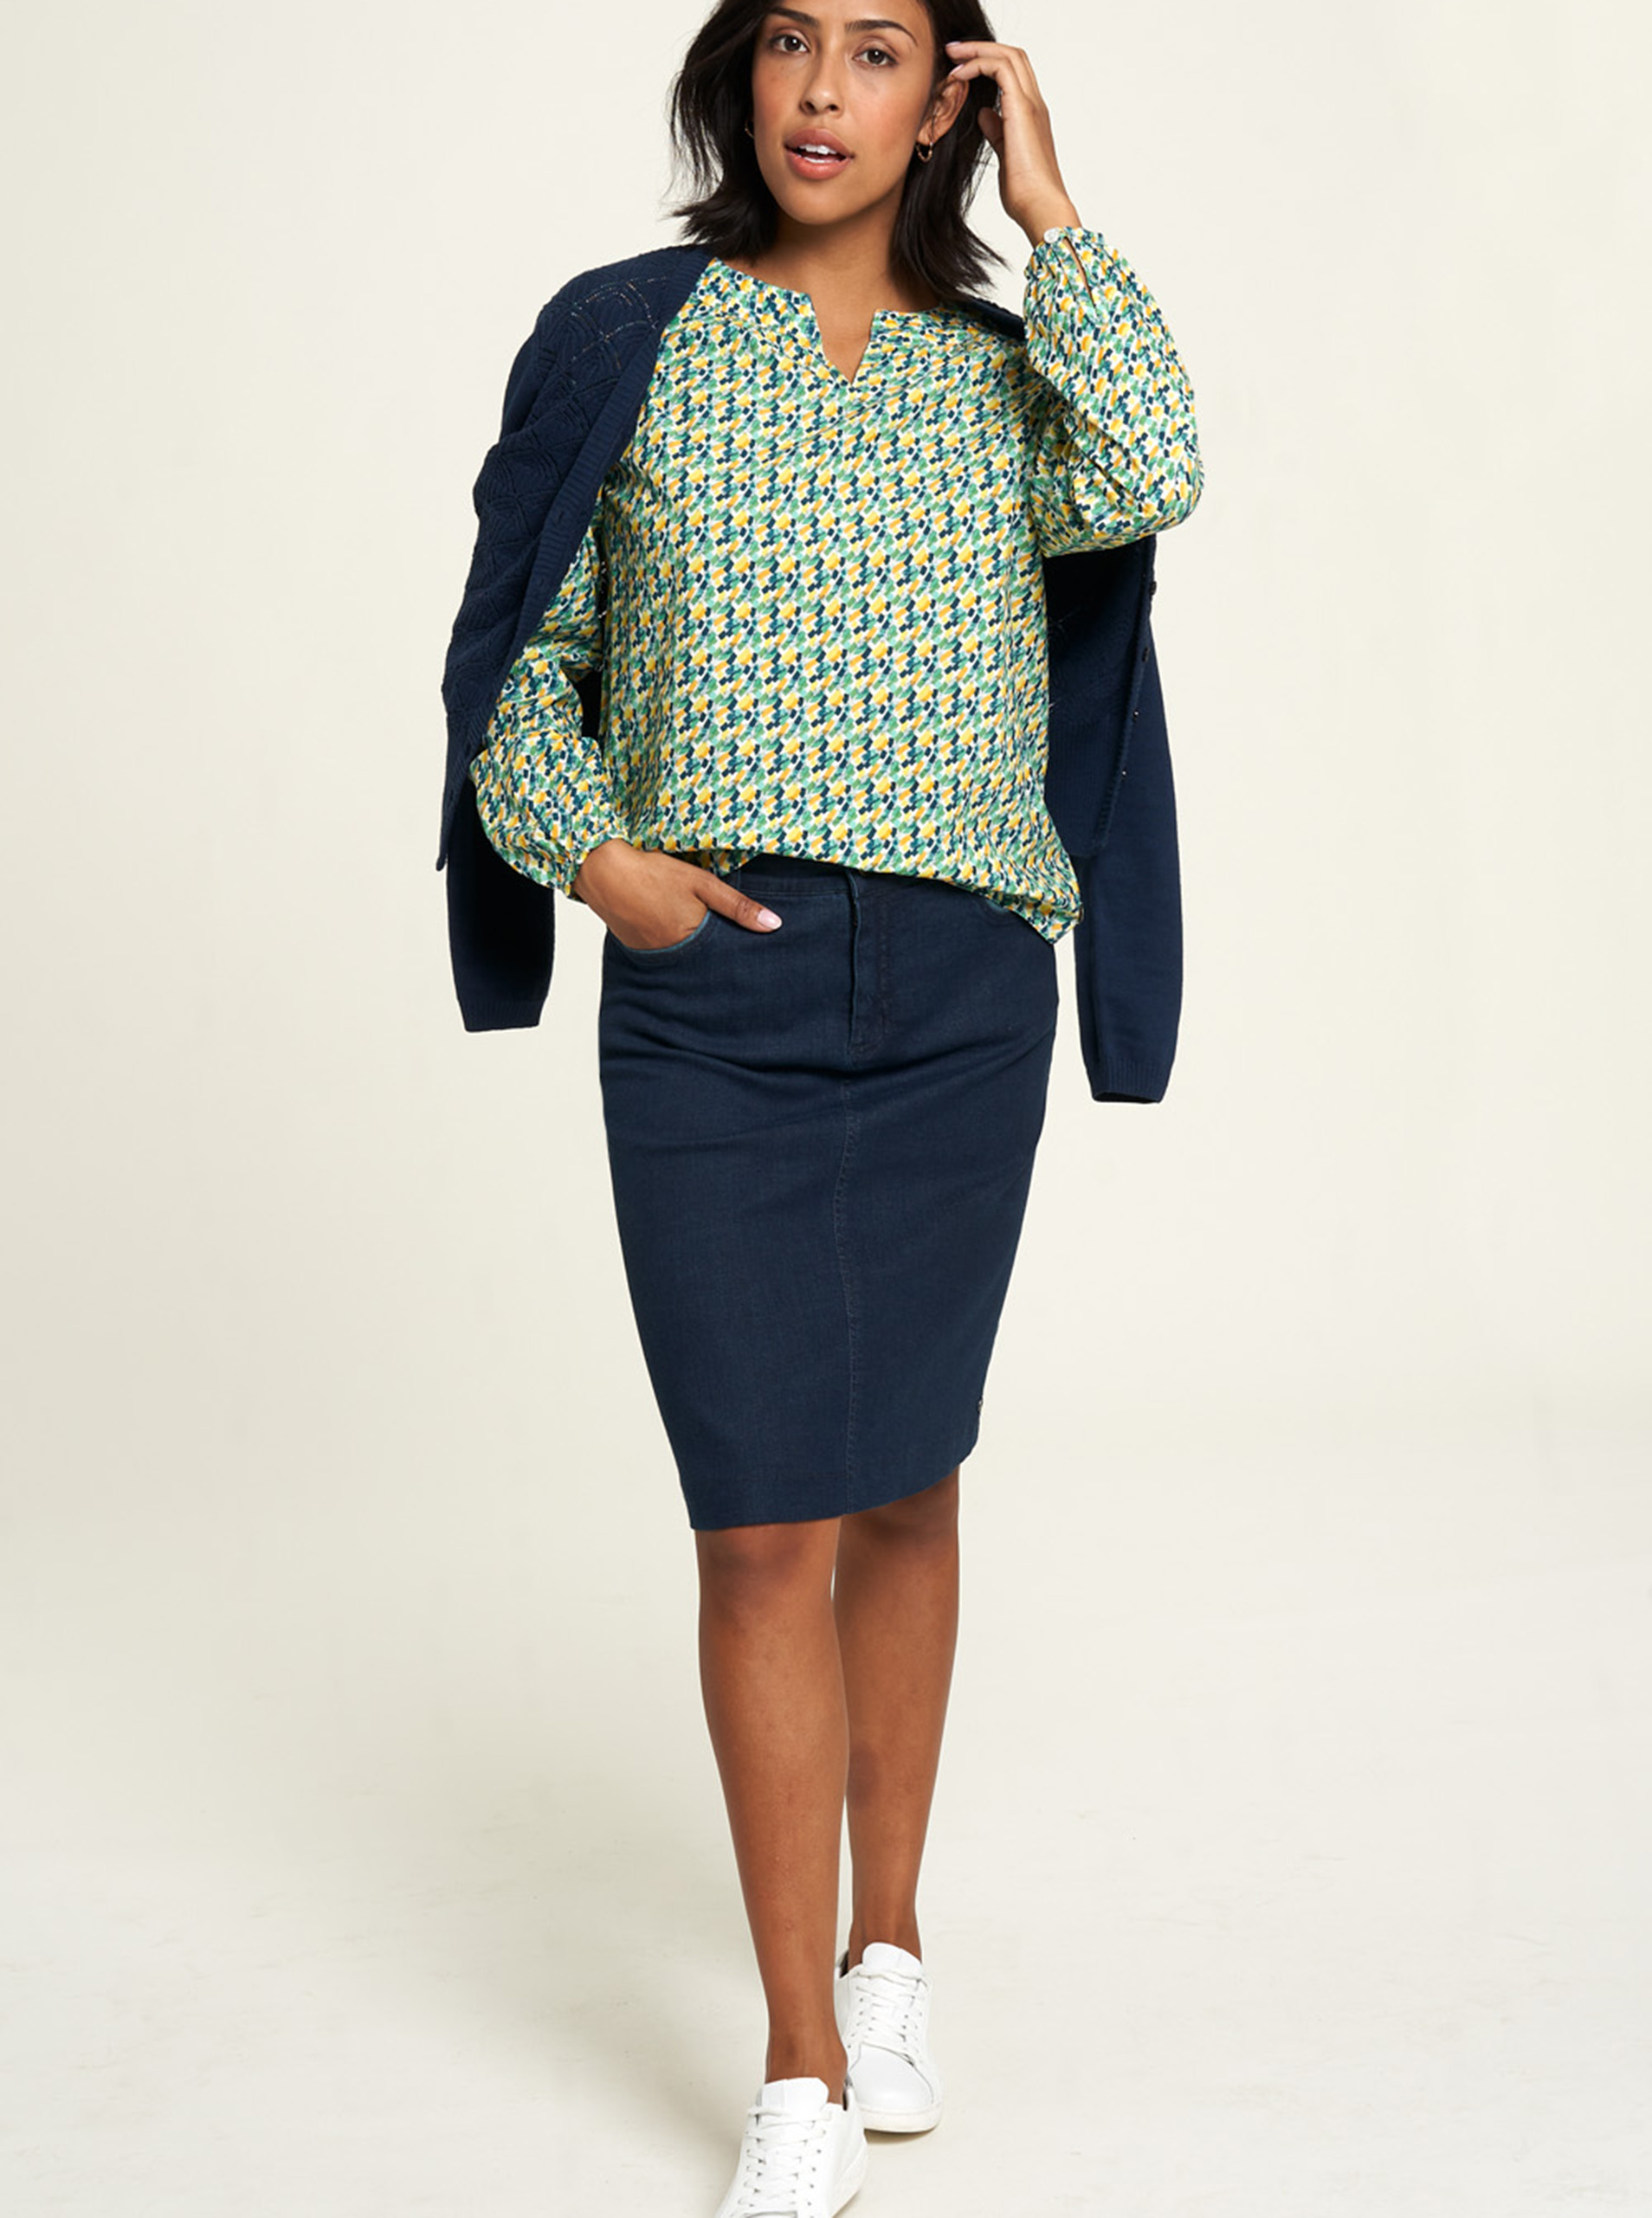 Tranquillo green blouse with pattern